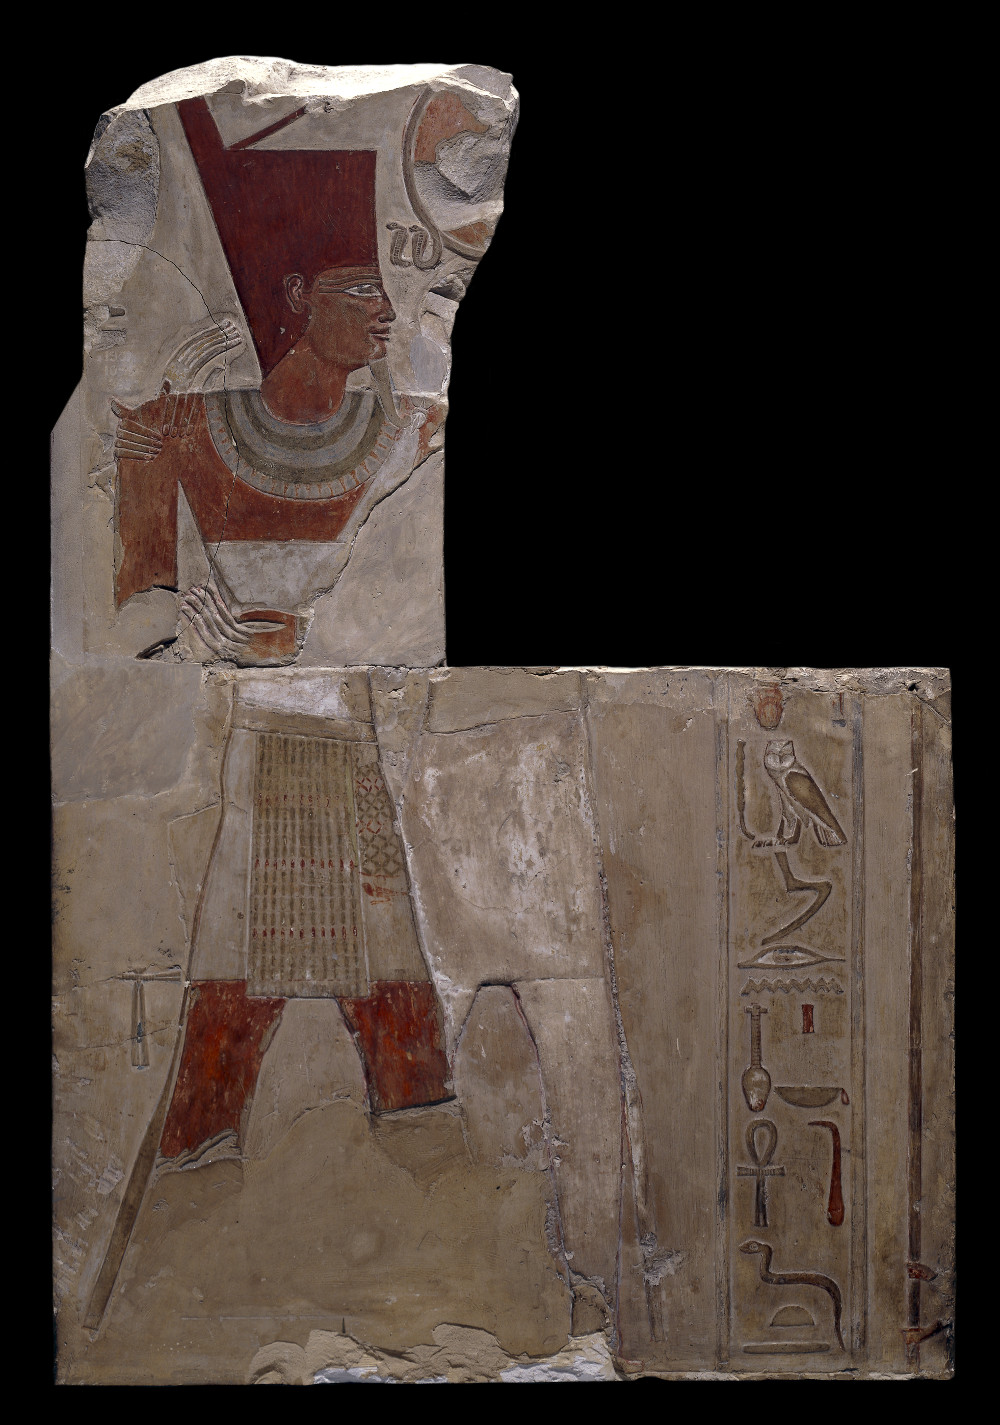 Relief of Mentuhotep II - Limestone2055–2004 BCDeir el-Bahari, EgyptBritish MuseumThis relief shows the Pharaoh Mentuhotep II (reigned 2055–2004 BC), whose name means 'Montu is satisfied'; receiving the blessings of the falcon-headed god of war Montu (now largely destroyed). Mentuhotep II's reign was marked by intense military activity. He is credited with having reunited Upper and Lower Egypt, and reopening trading links with the Levant. To further solidify his power, Mentuhotep II reorganised the administrative structure of Egypt, installing governors to limit the power of provincial officials.